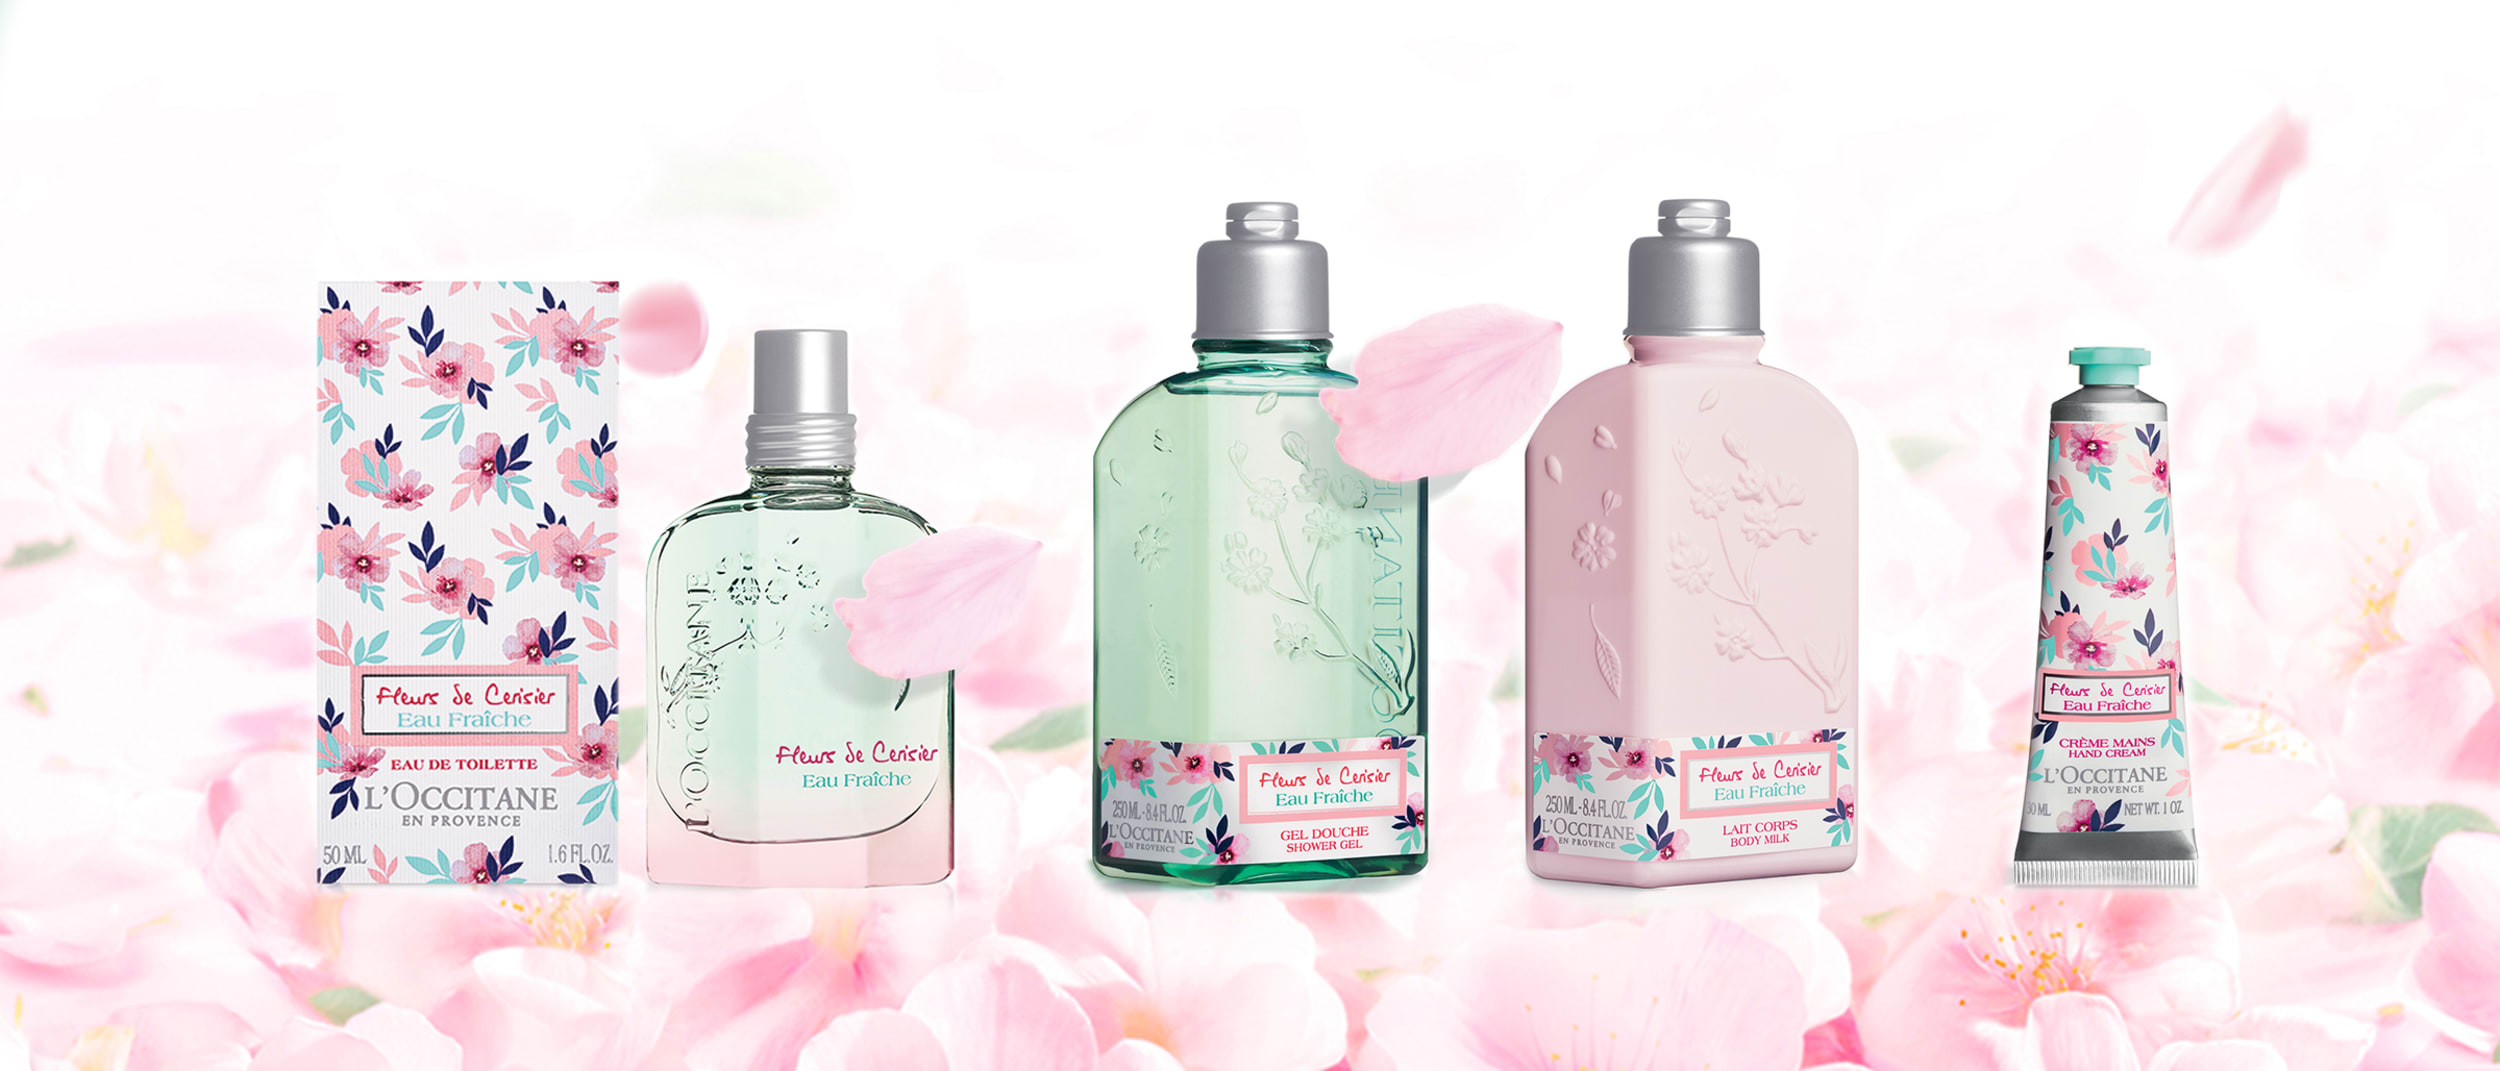 L'Occitane limited-edition Cherry Blossom collection